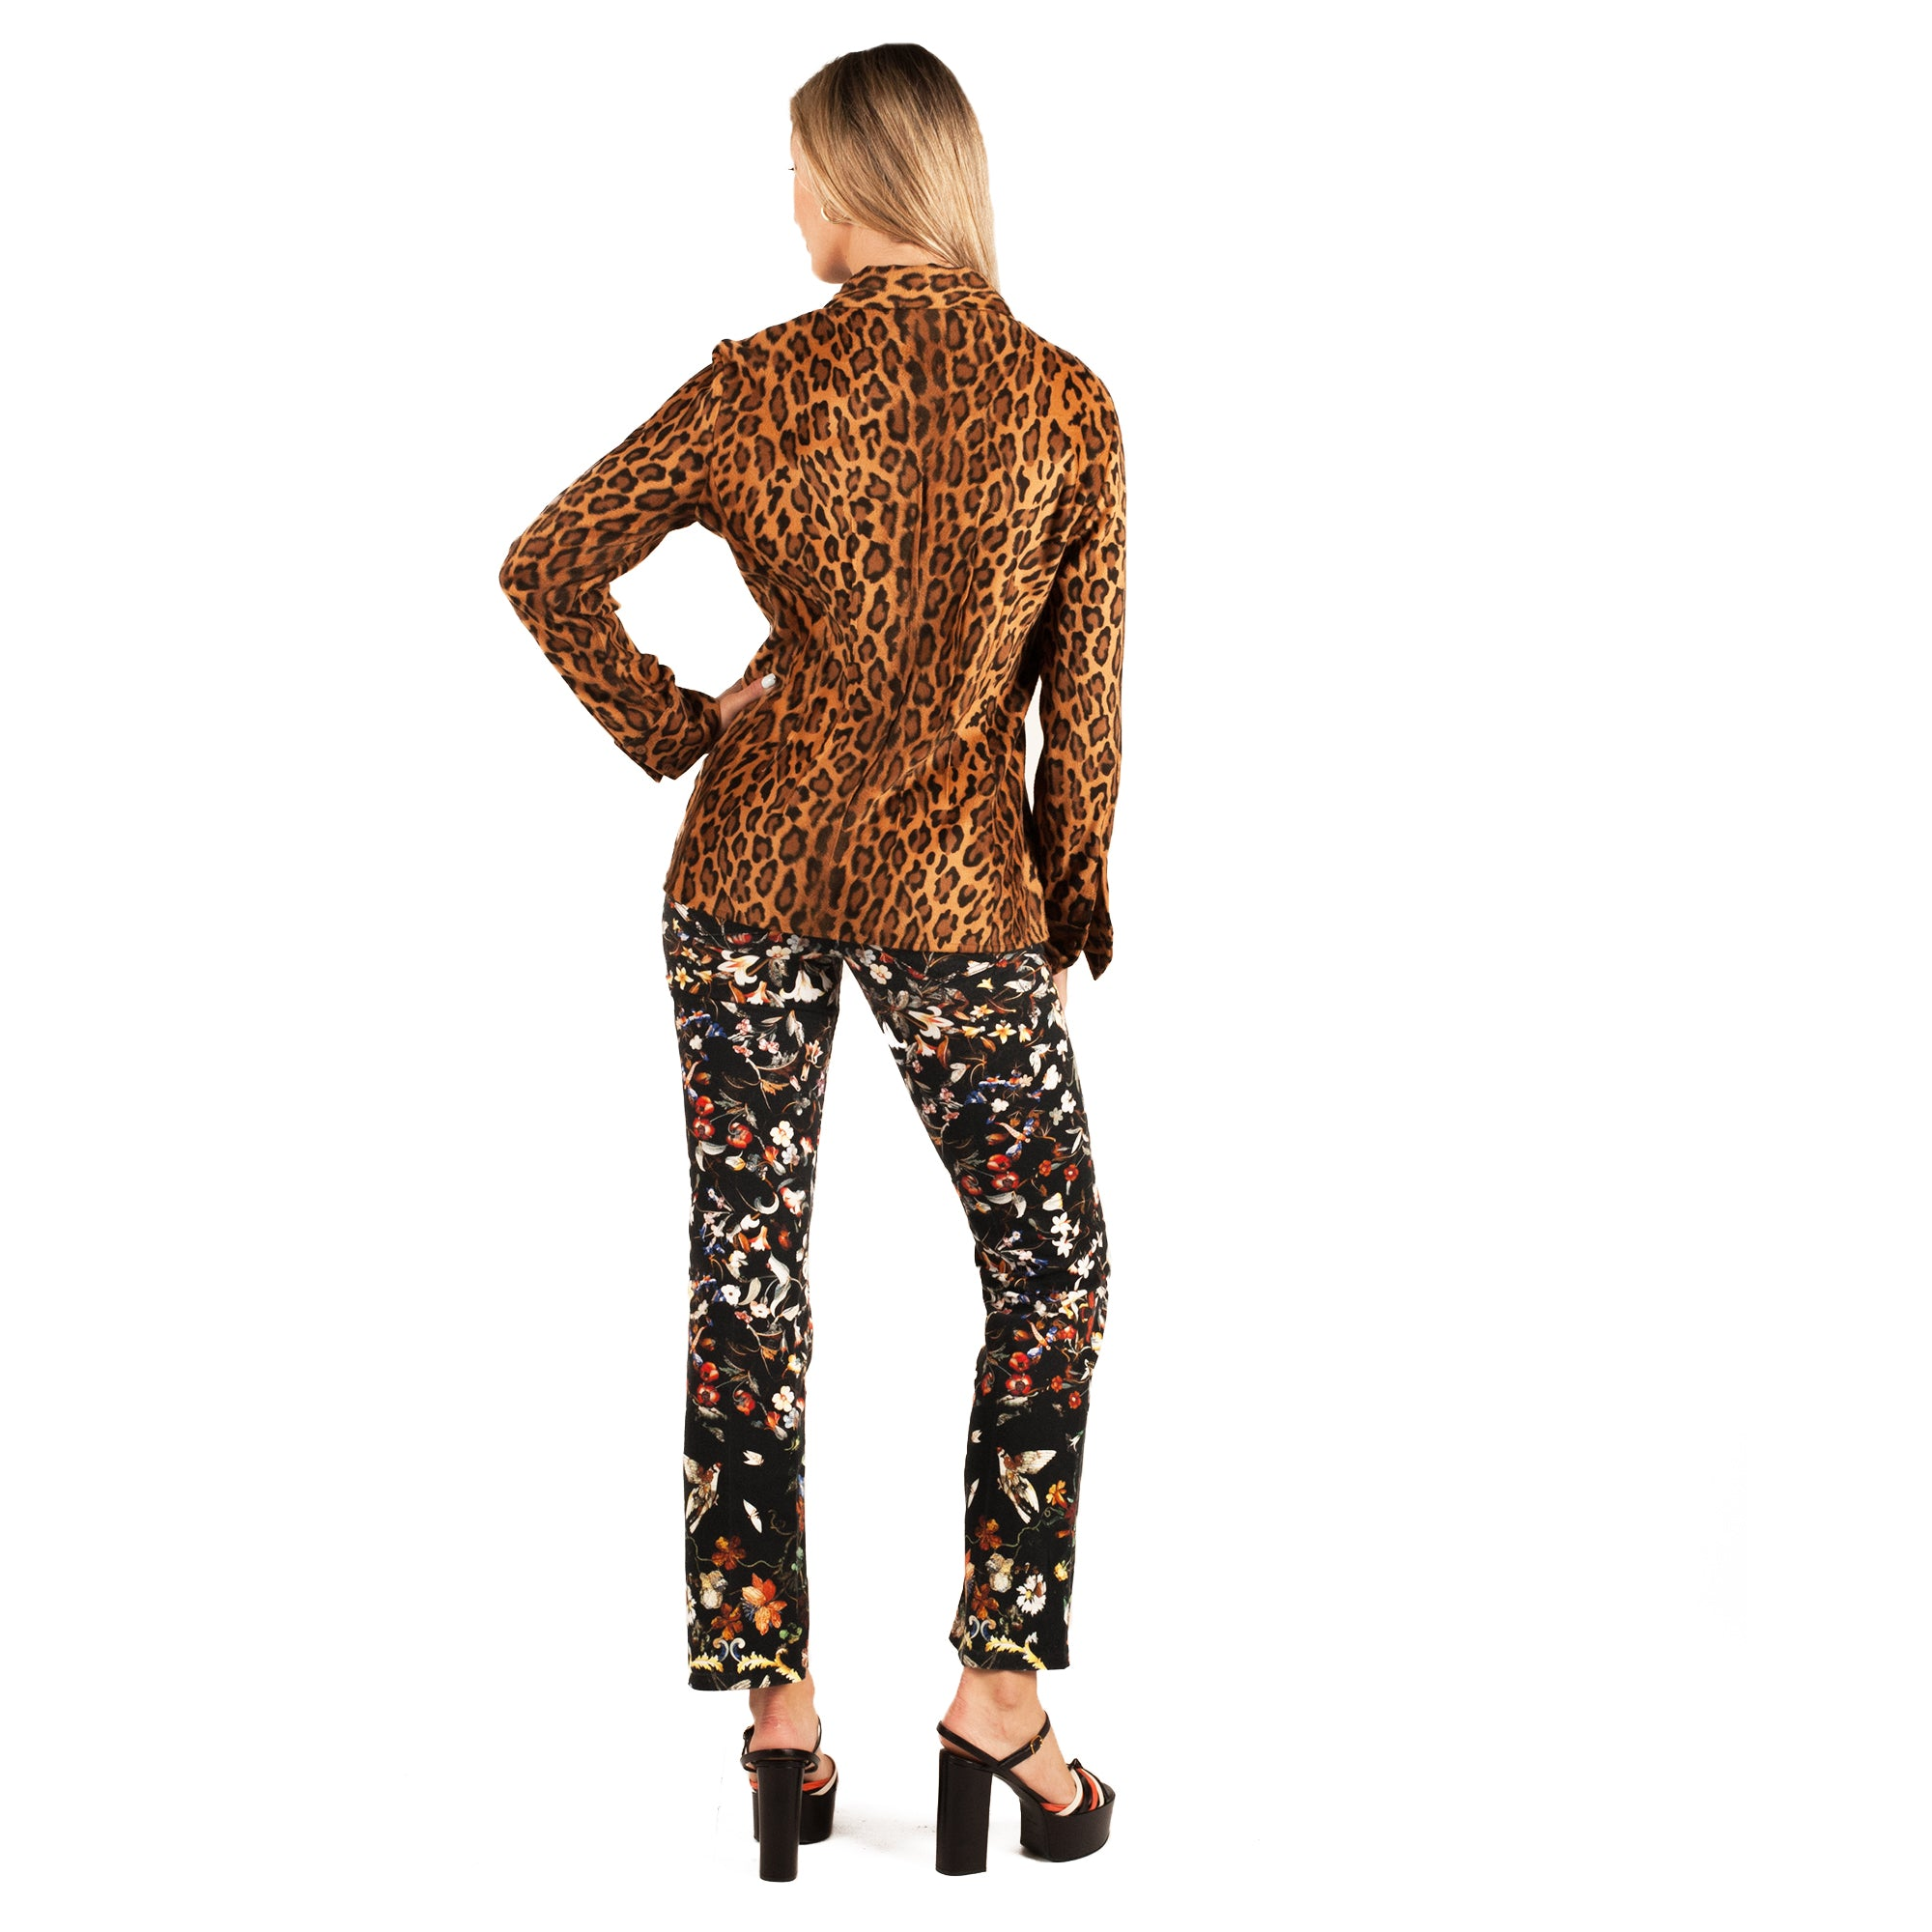 Gianfranco Ferre Shirt (Leopard) UK 8-10